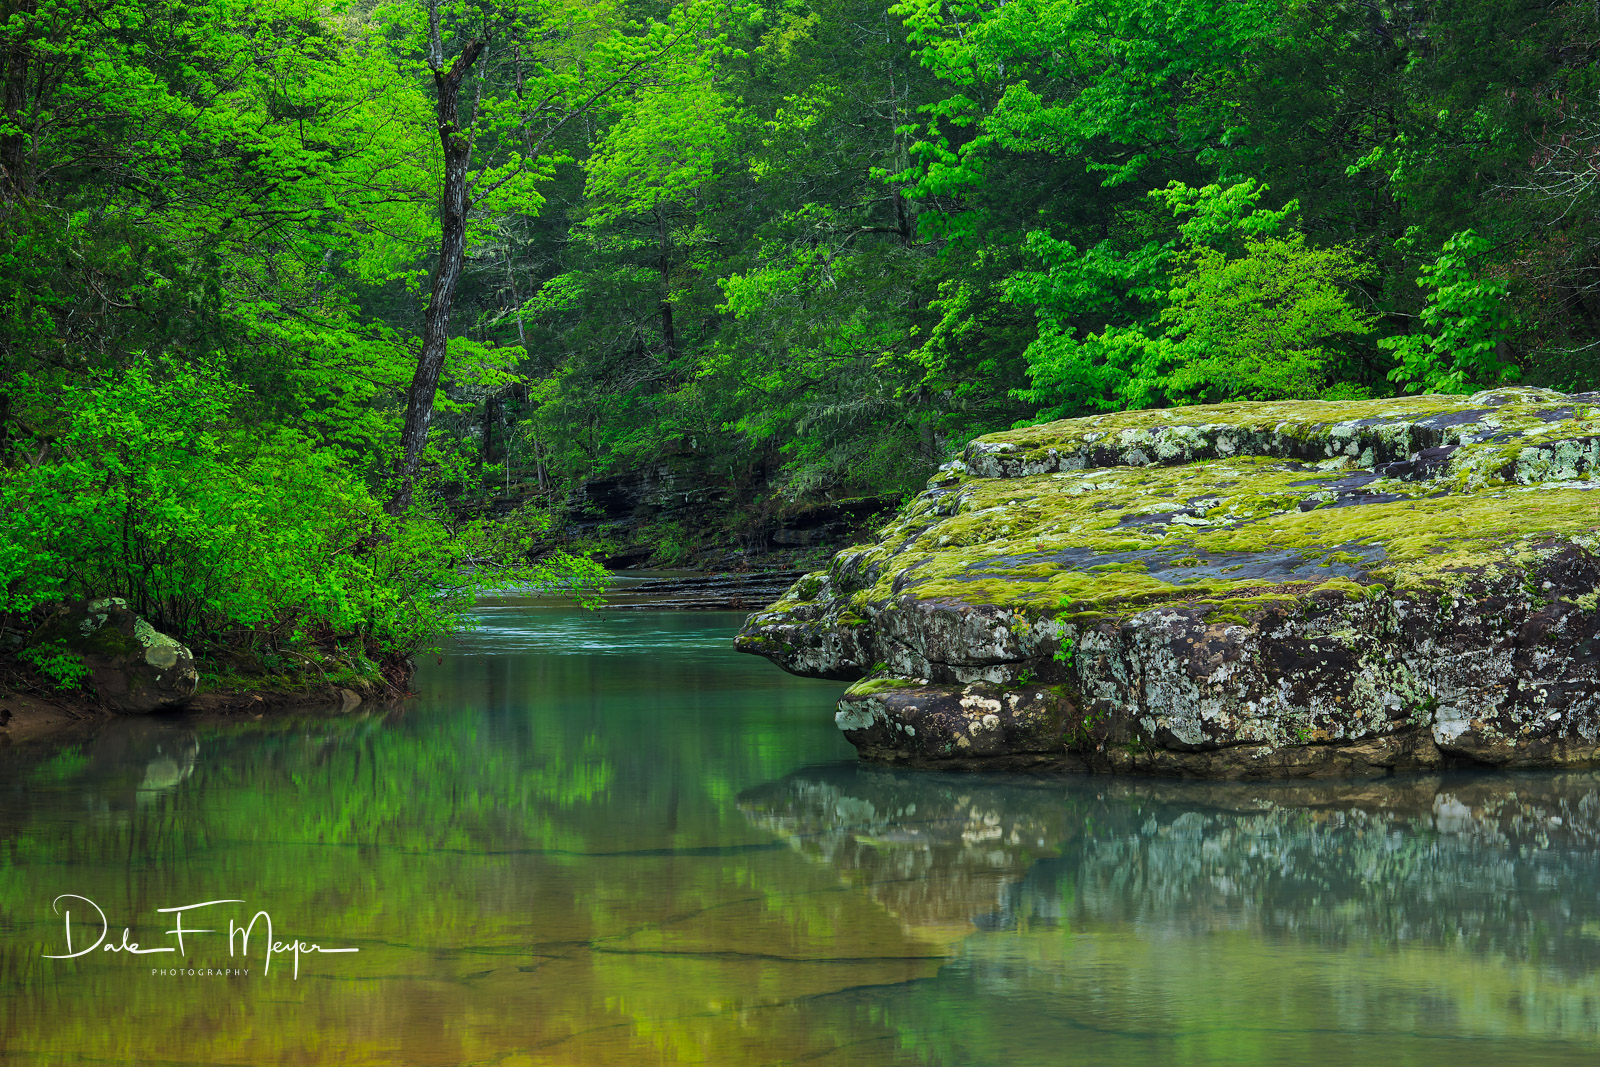 Richland Creek Arkansas,rivers streams and waterfalls gallery,spring 2015, photo